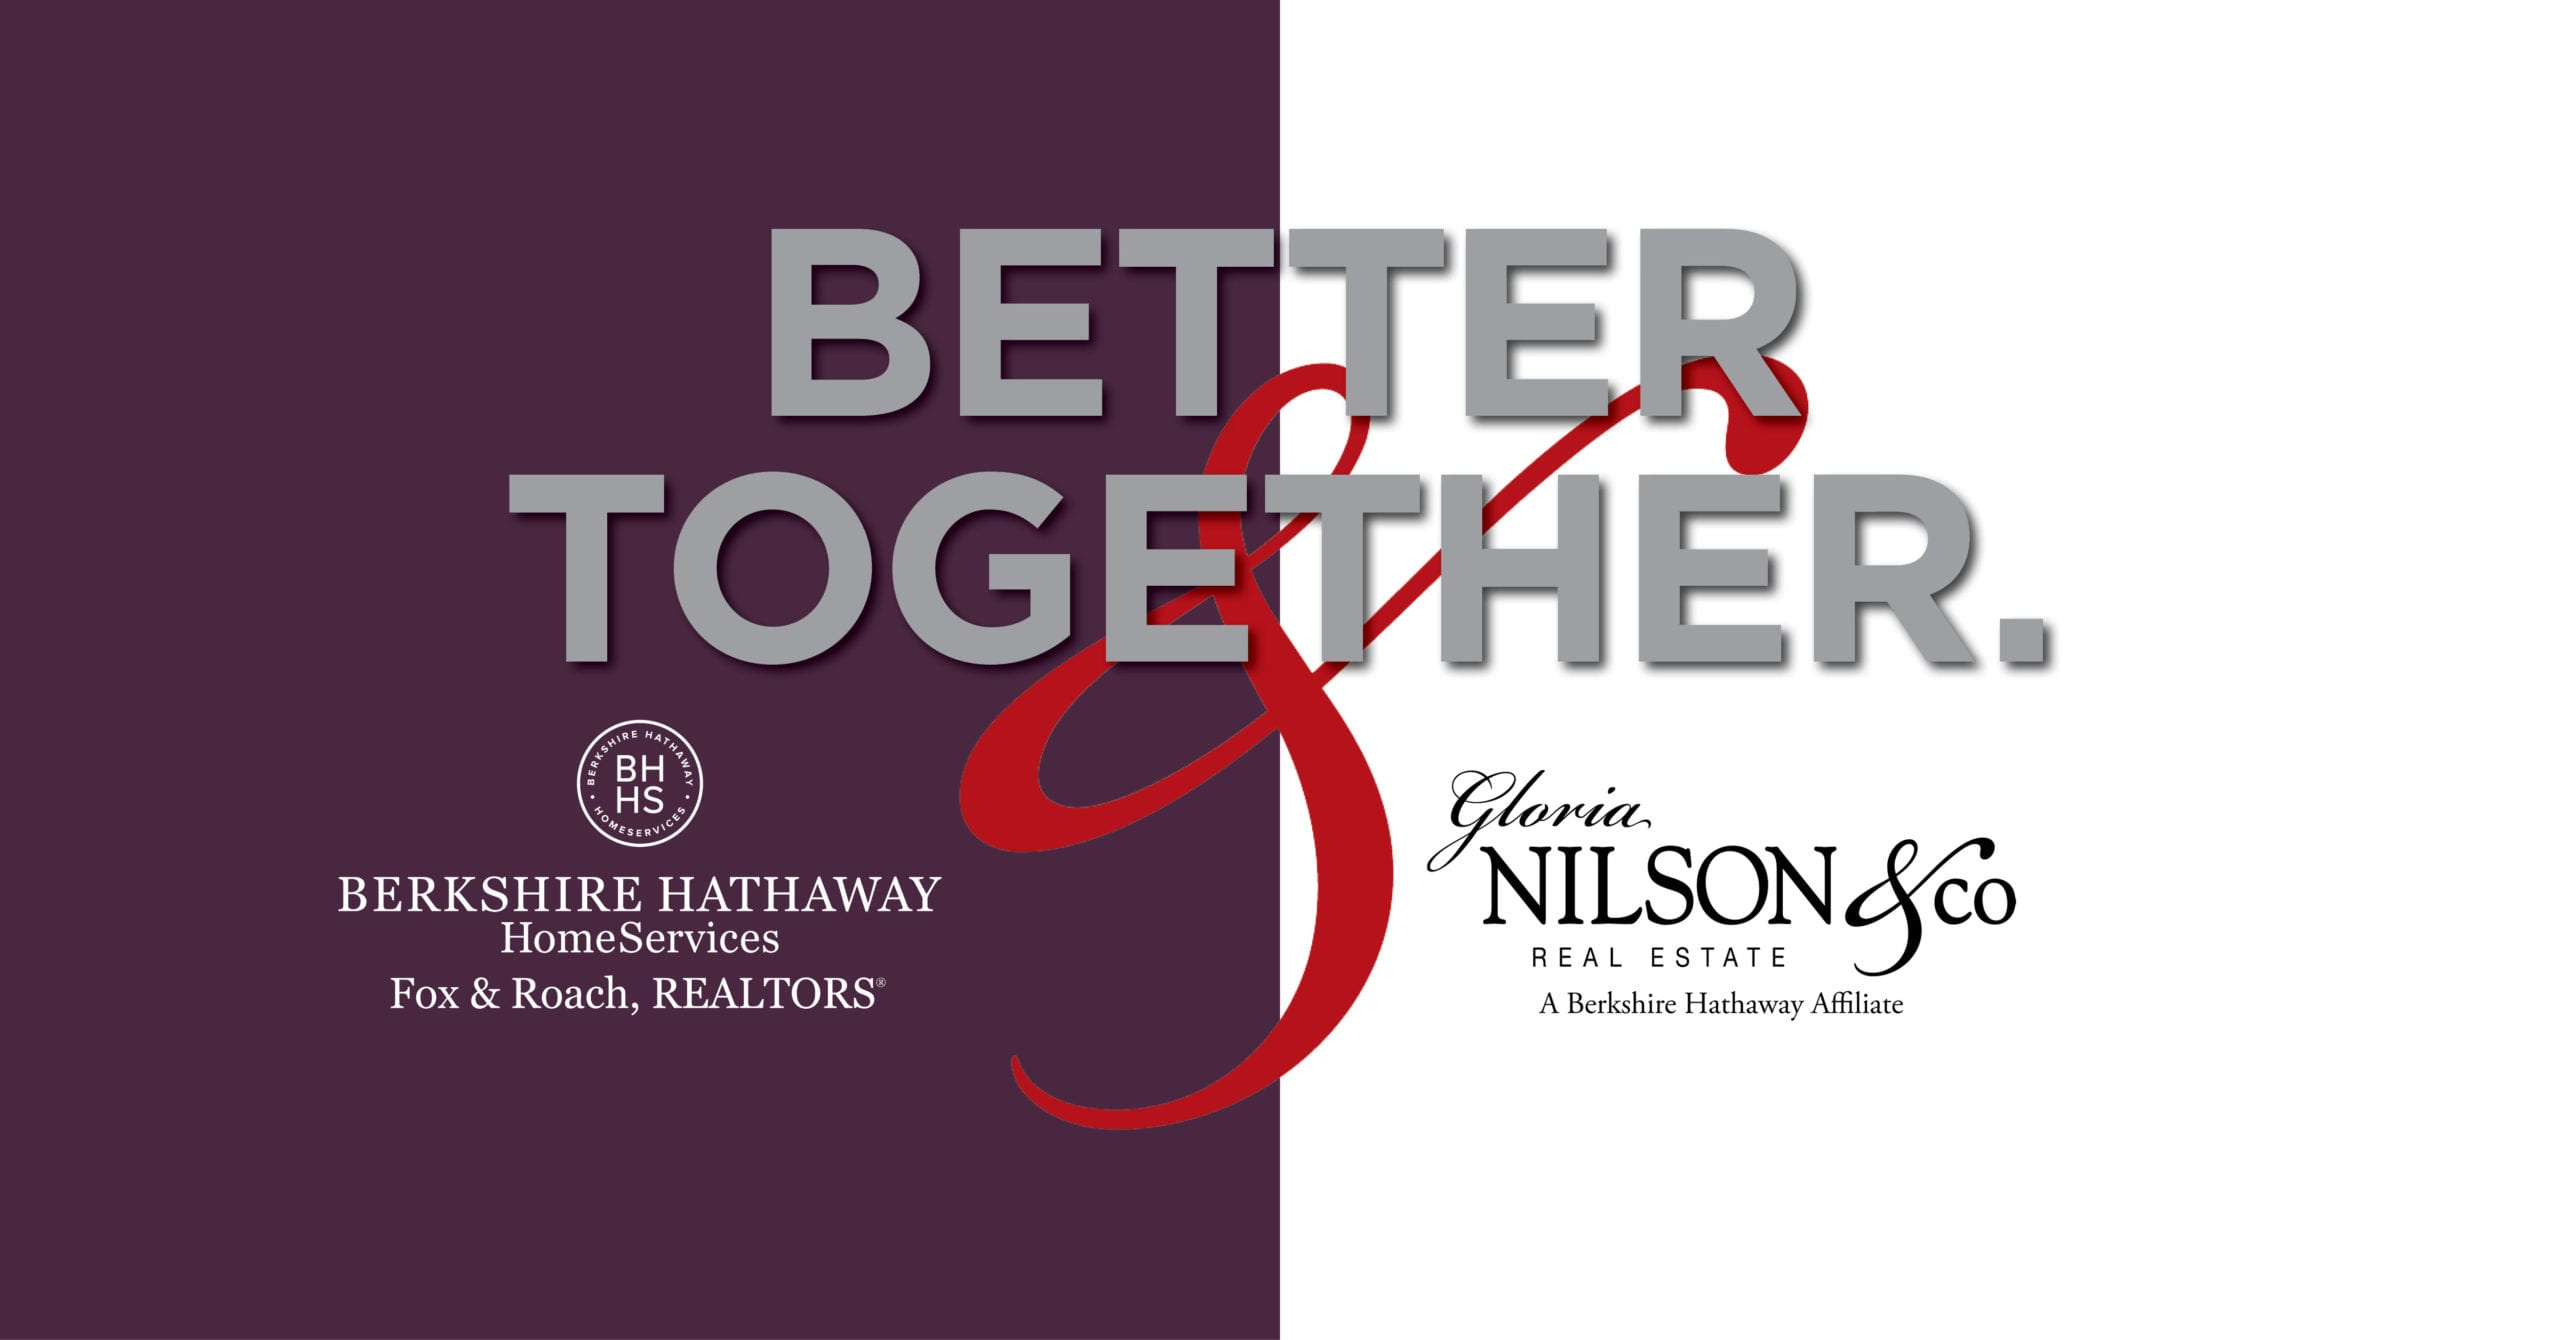 Berkshire Hathaway Homeservices Fox Roach Realtors And Gloria Nilson Co Announce Merger Bhhs Fox Roach Berkshire Hathaway Homeservices Fox Roach Realtors And Gloria Nilson Co Announce